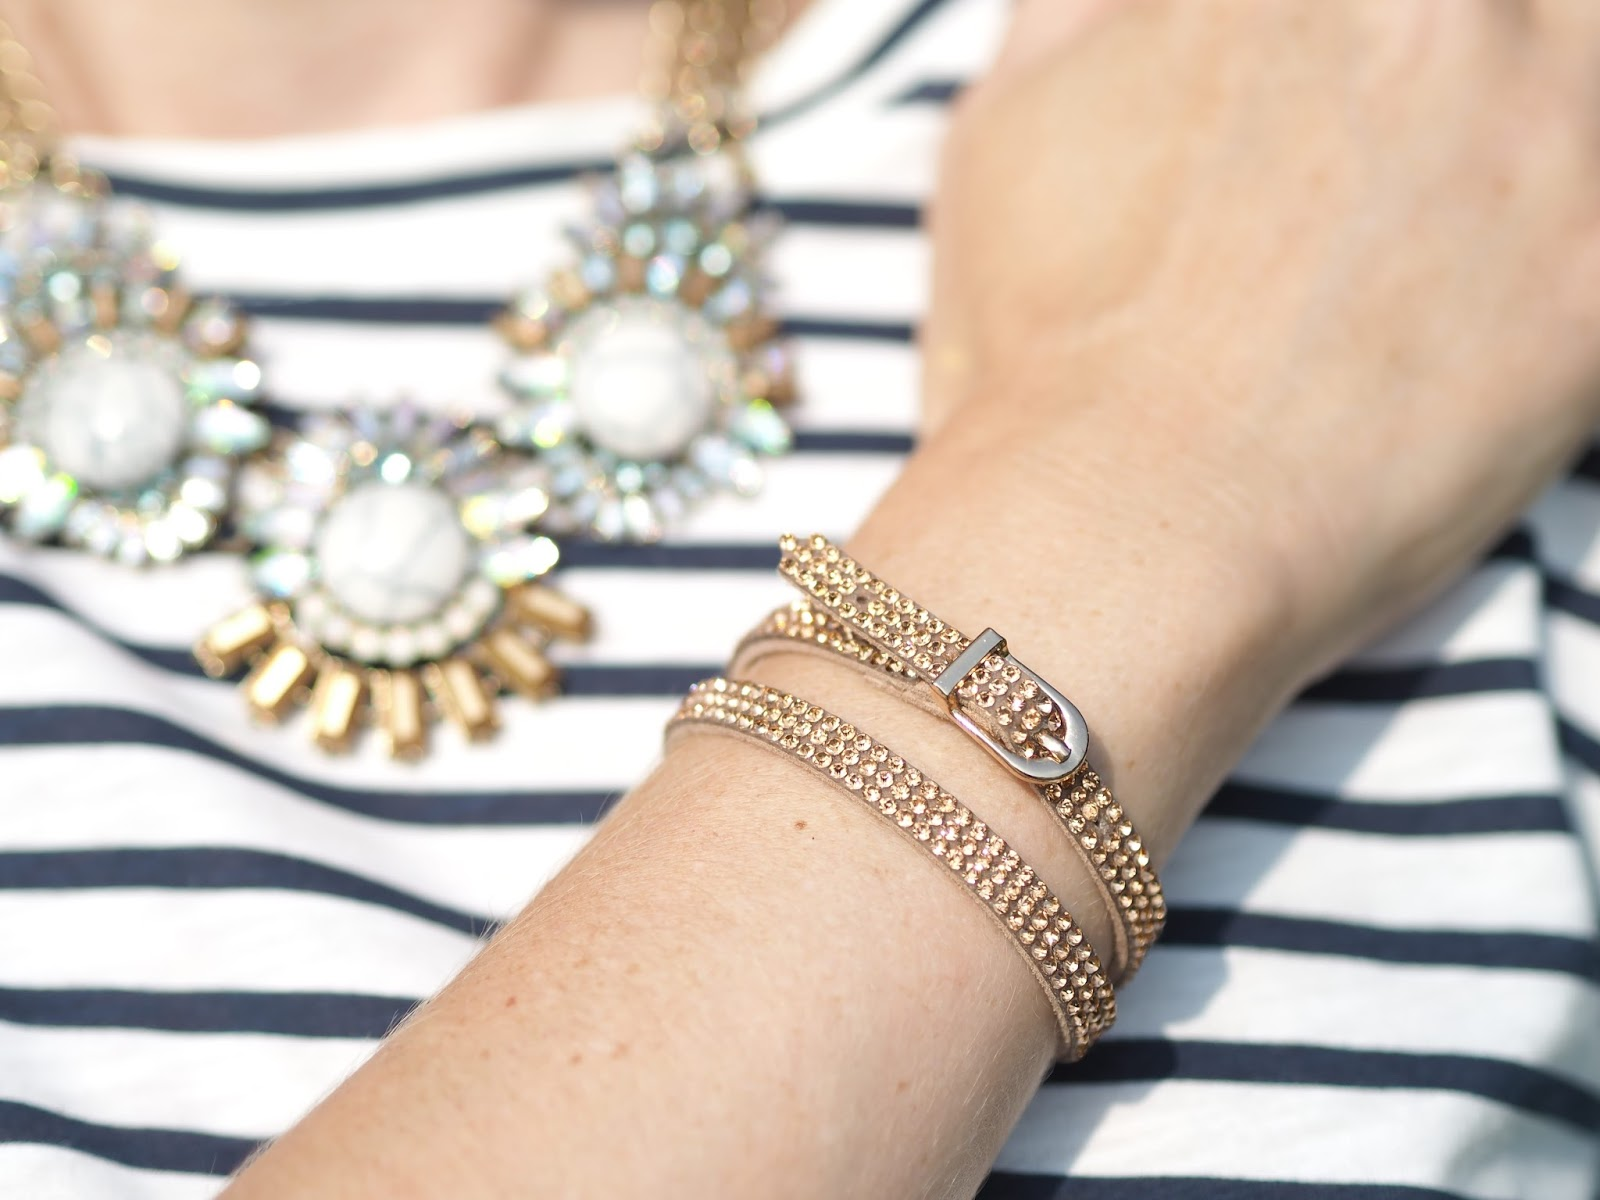 Striped cocoon dress, statement necklace and rose gold wrap bracelet